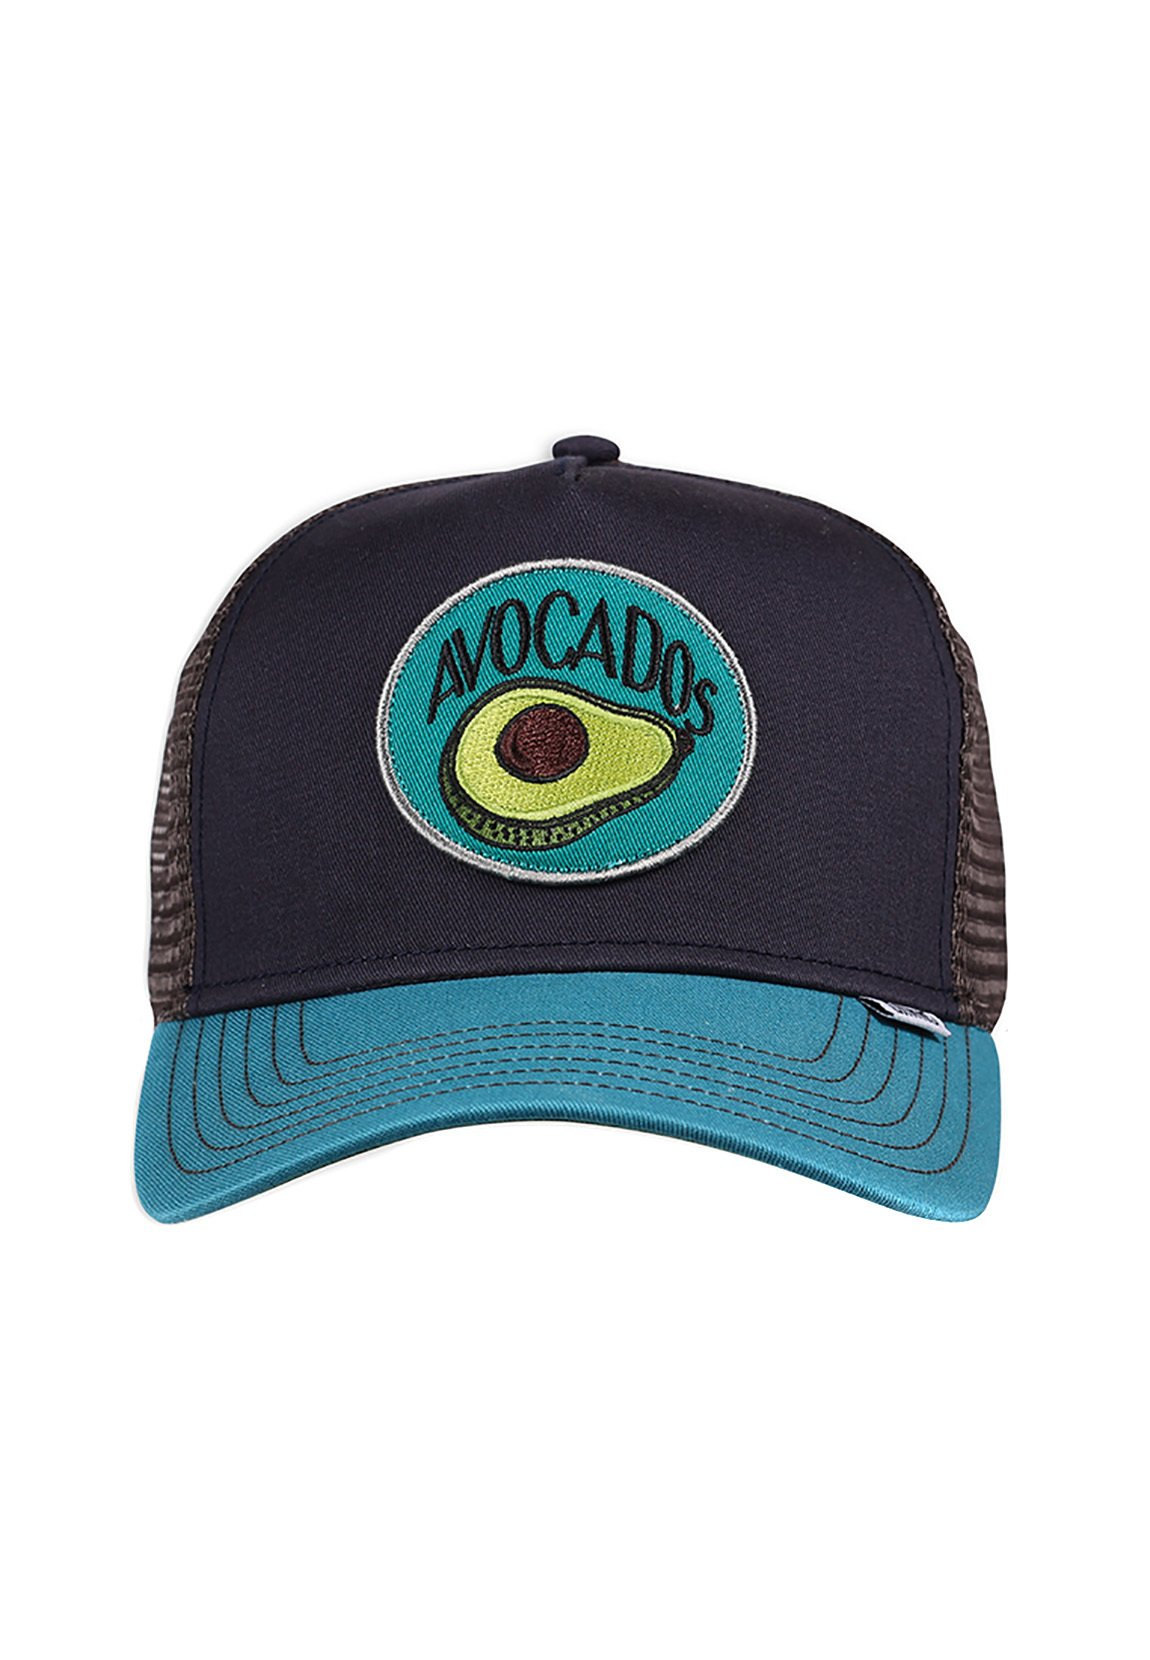 Homme FOOD AVOCADOS - Casquette